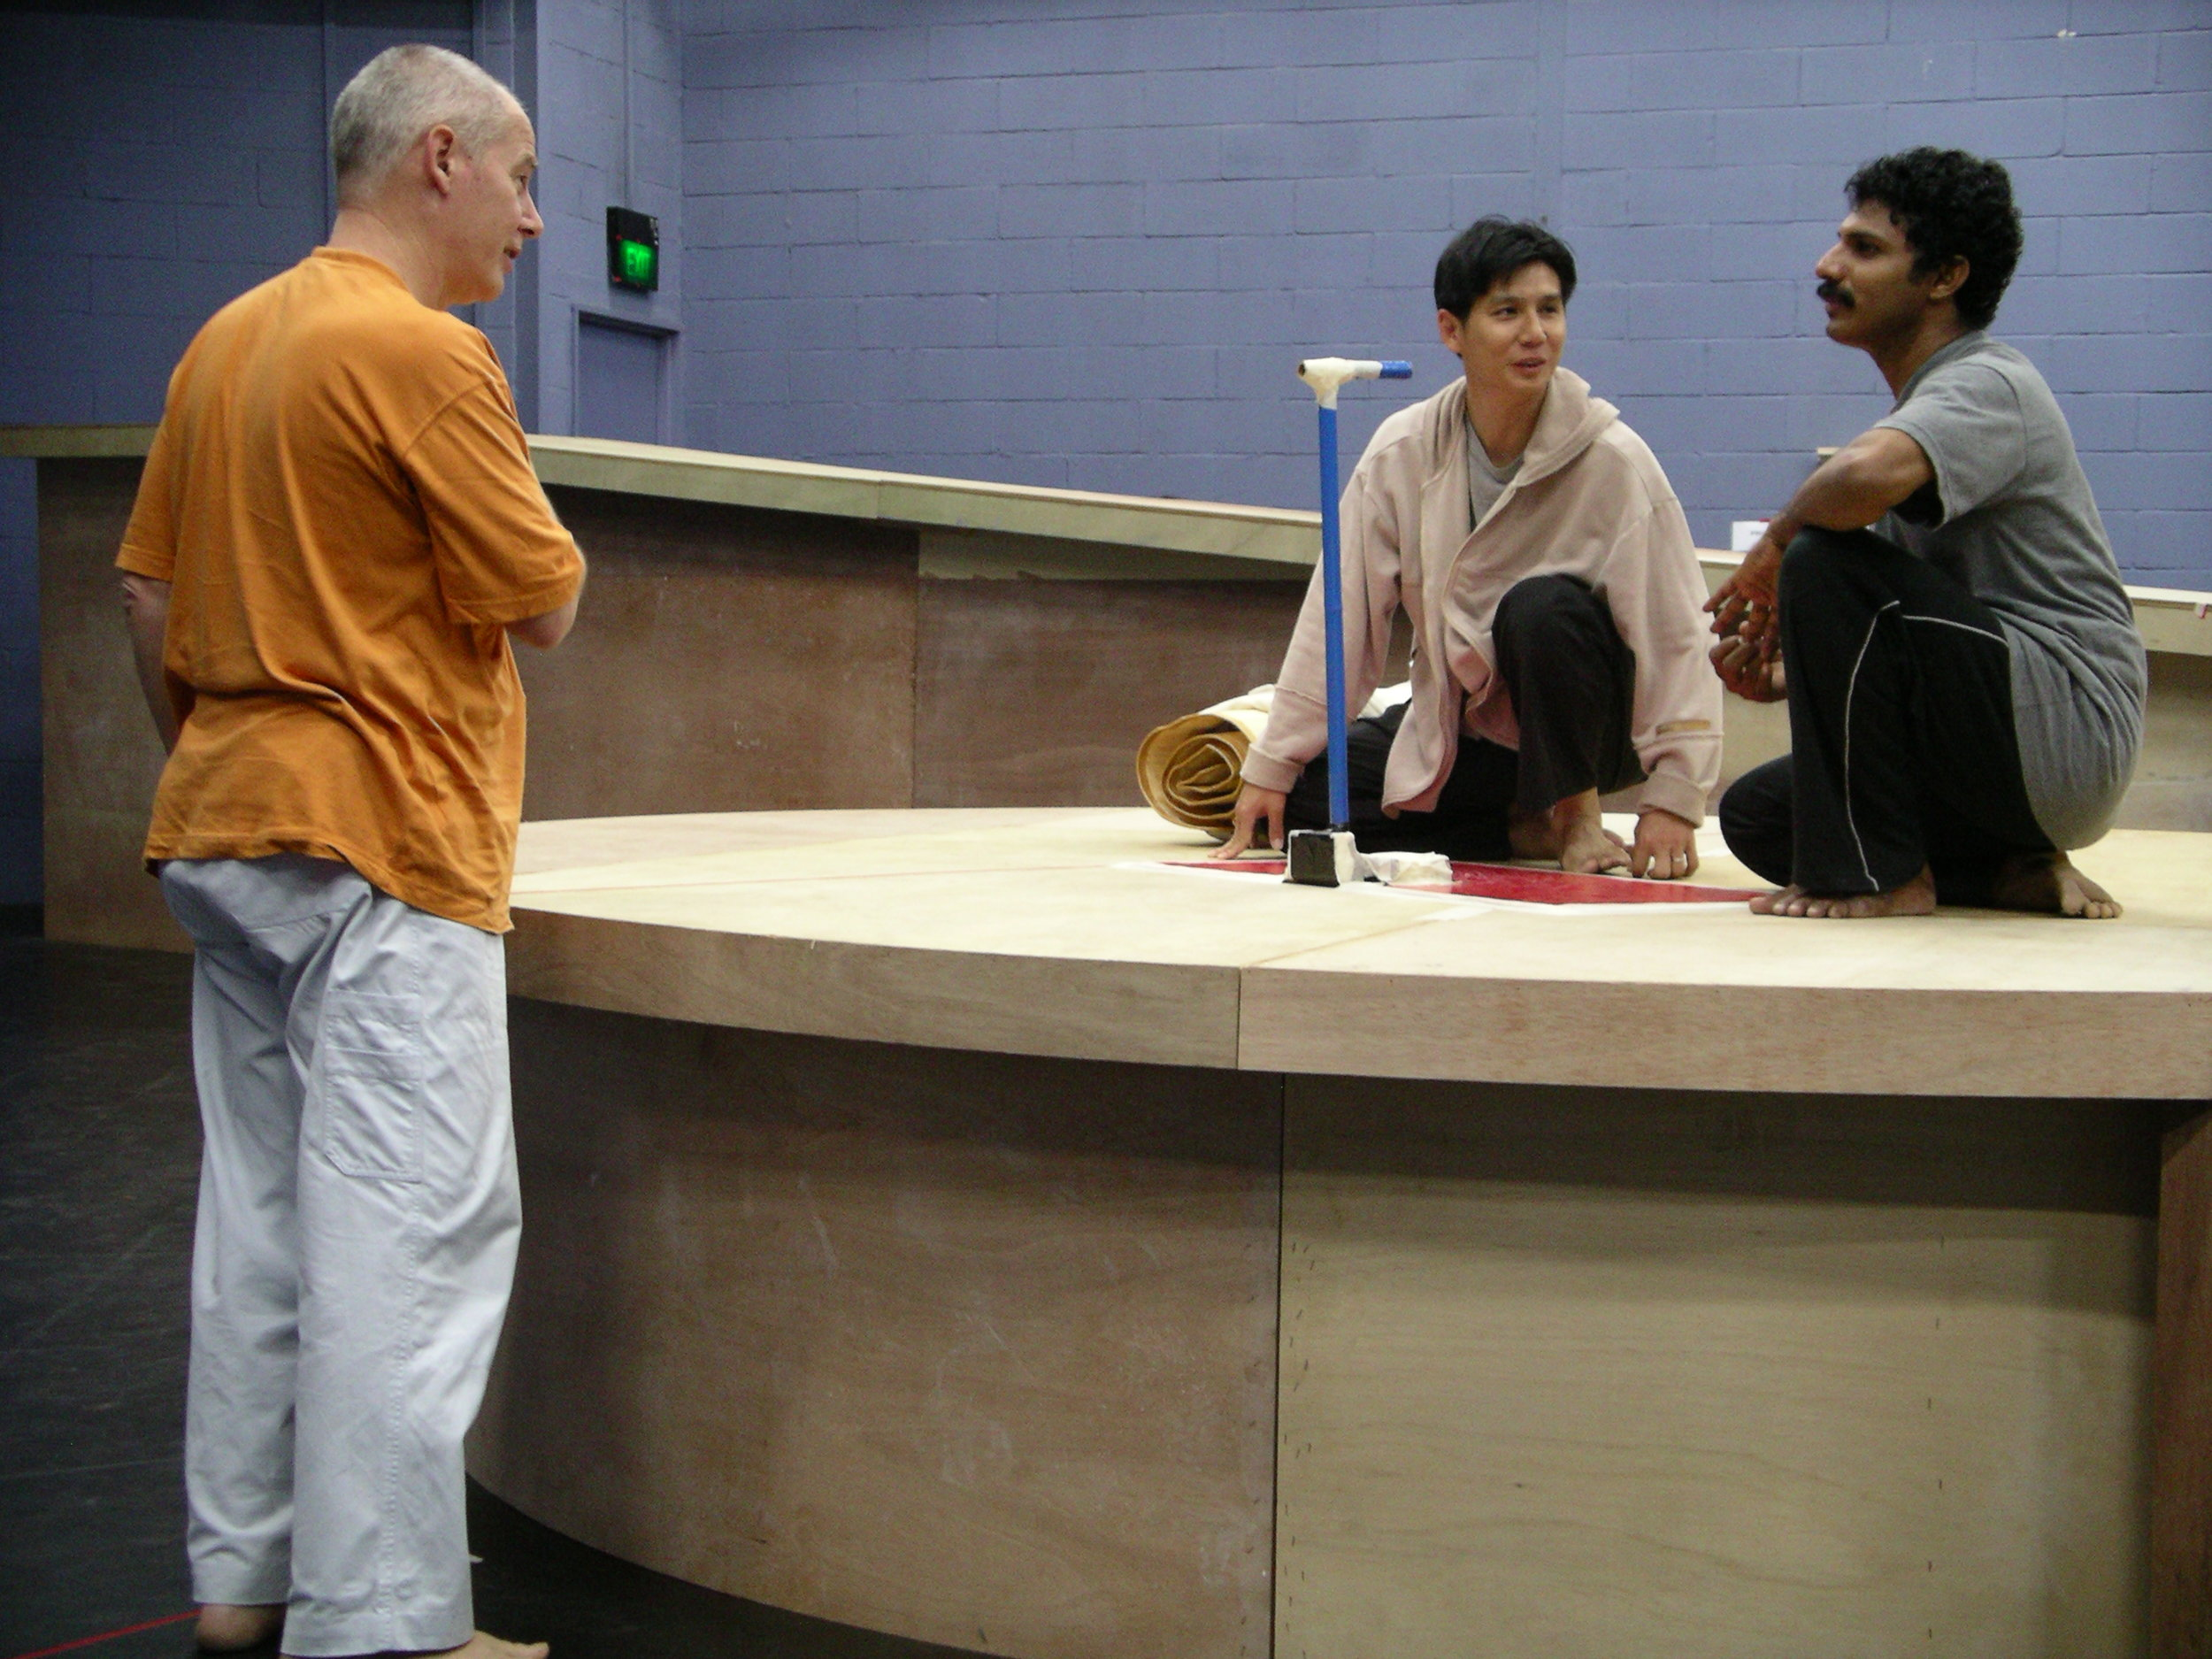 Phillip Zarrilli in rehearsals of Scene 2 with Pern Yau and Naushad (Man 1 and Man 2) for the 2004 TTRP production of Ota Shogo's  The Water Station.